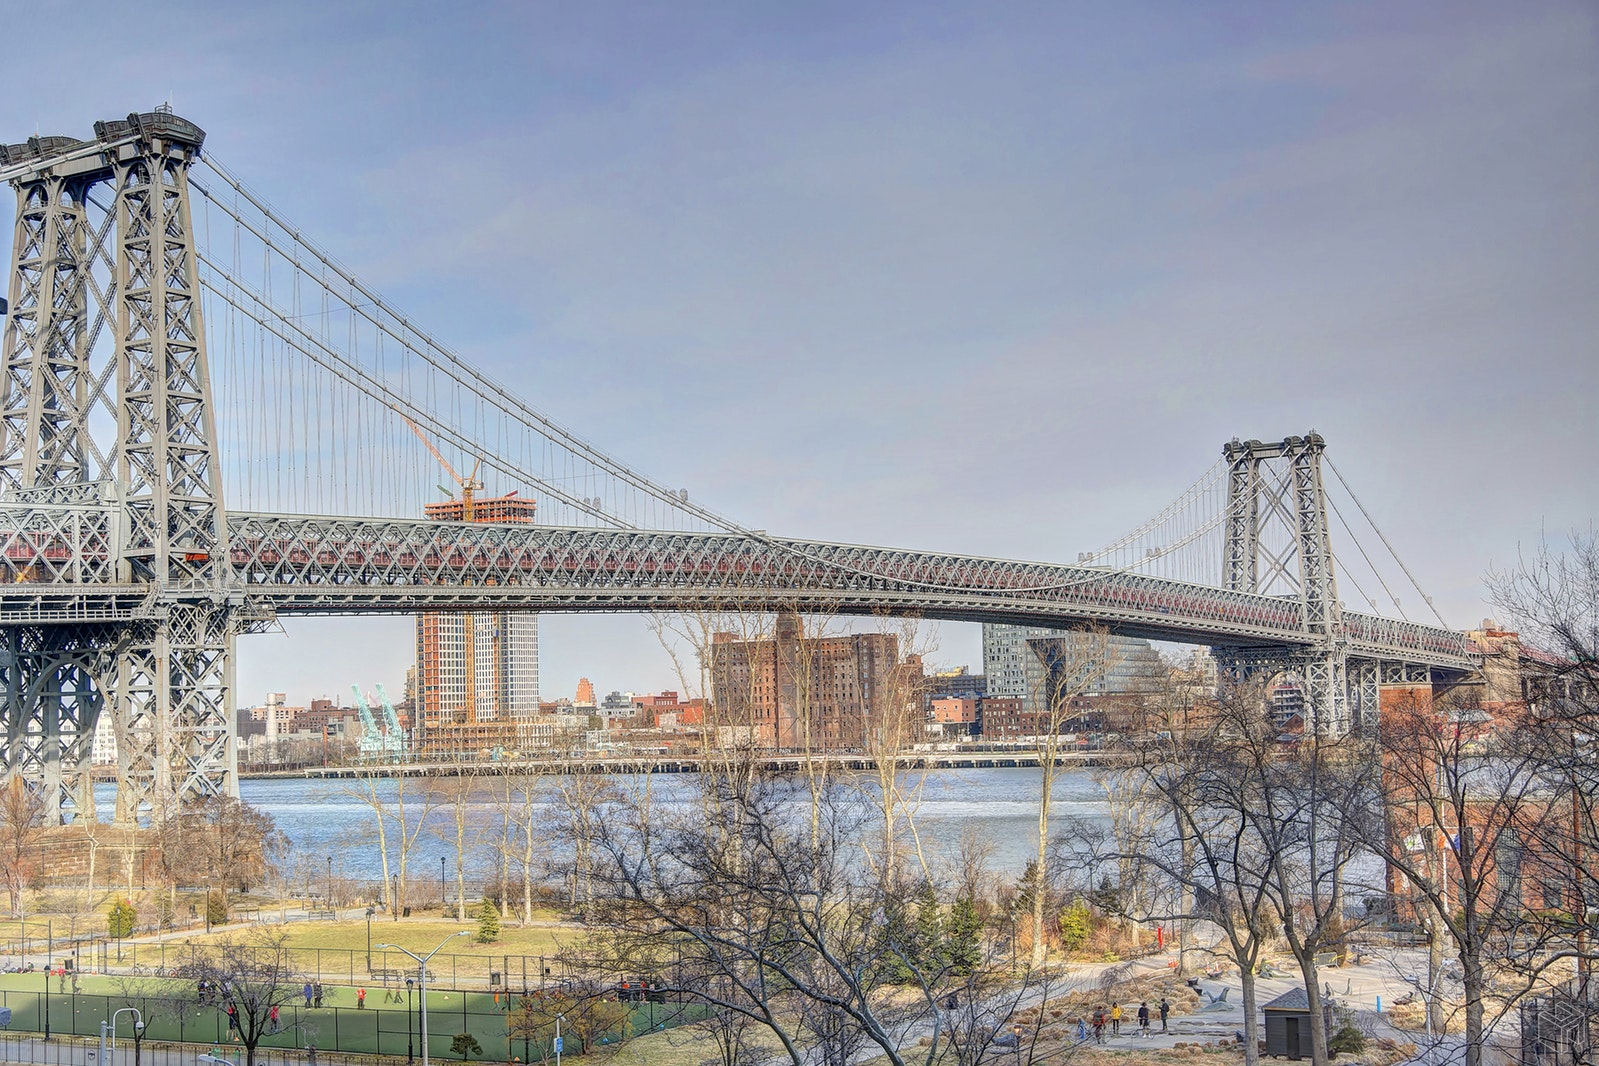 455 Fdr Drive, Lower East Side, NYC, 10002, $1,199,000, Property For Sale, Halstead Real Estate, Photo 6